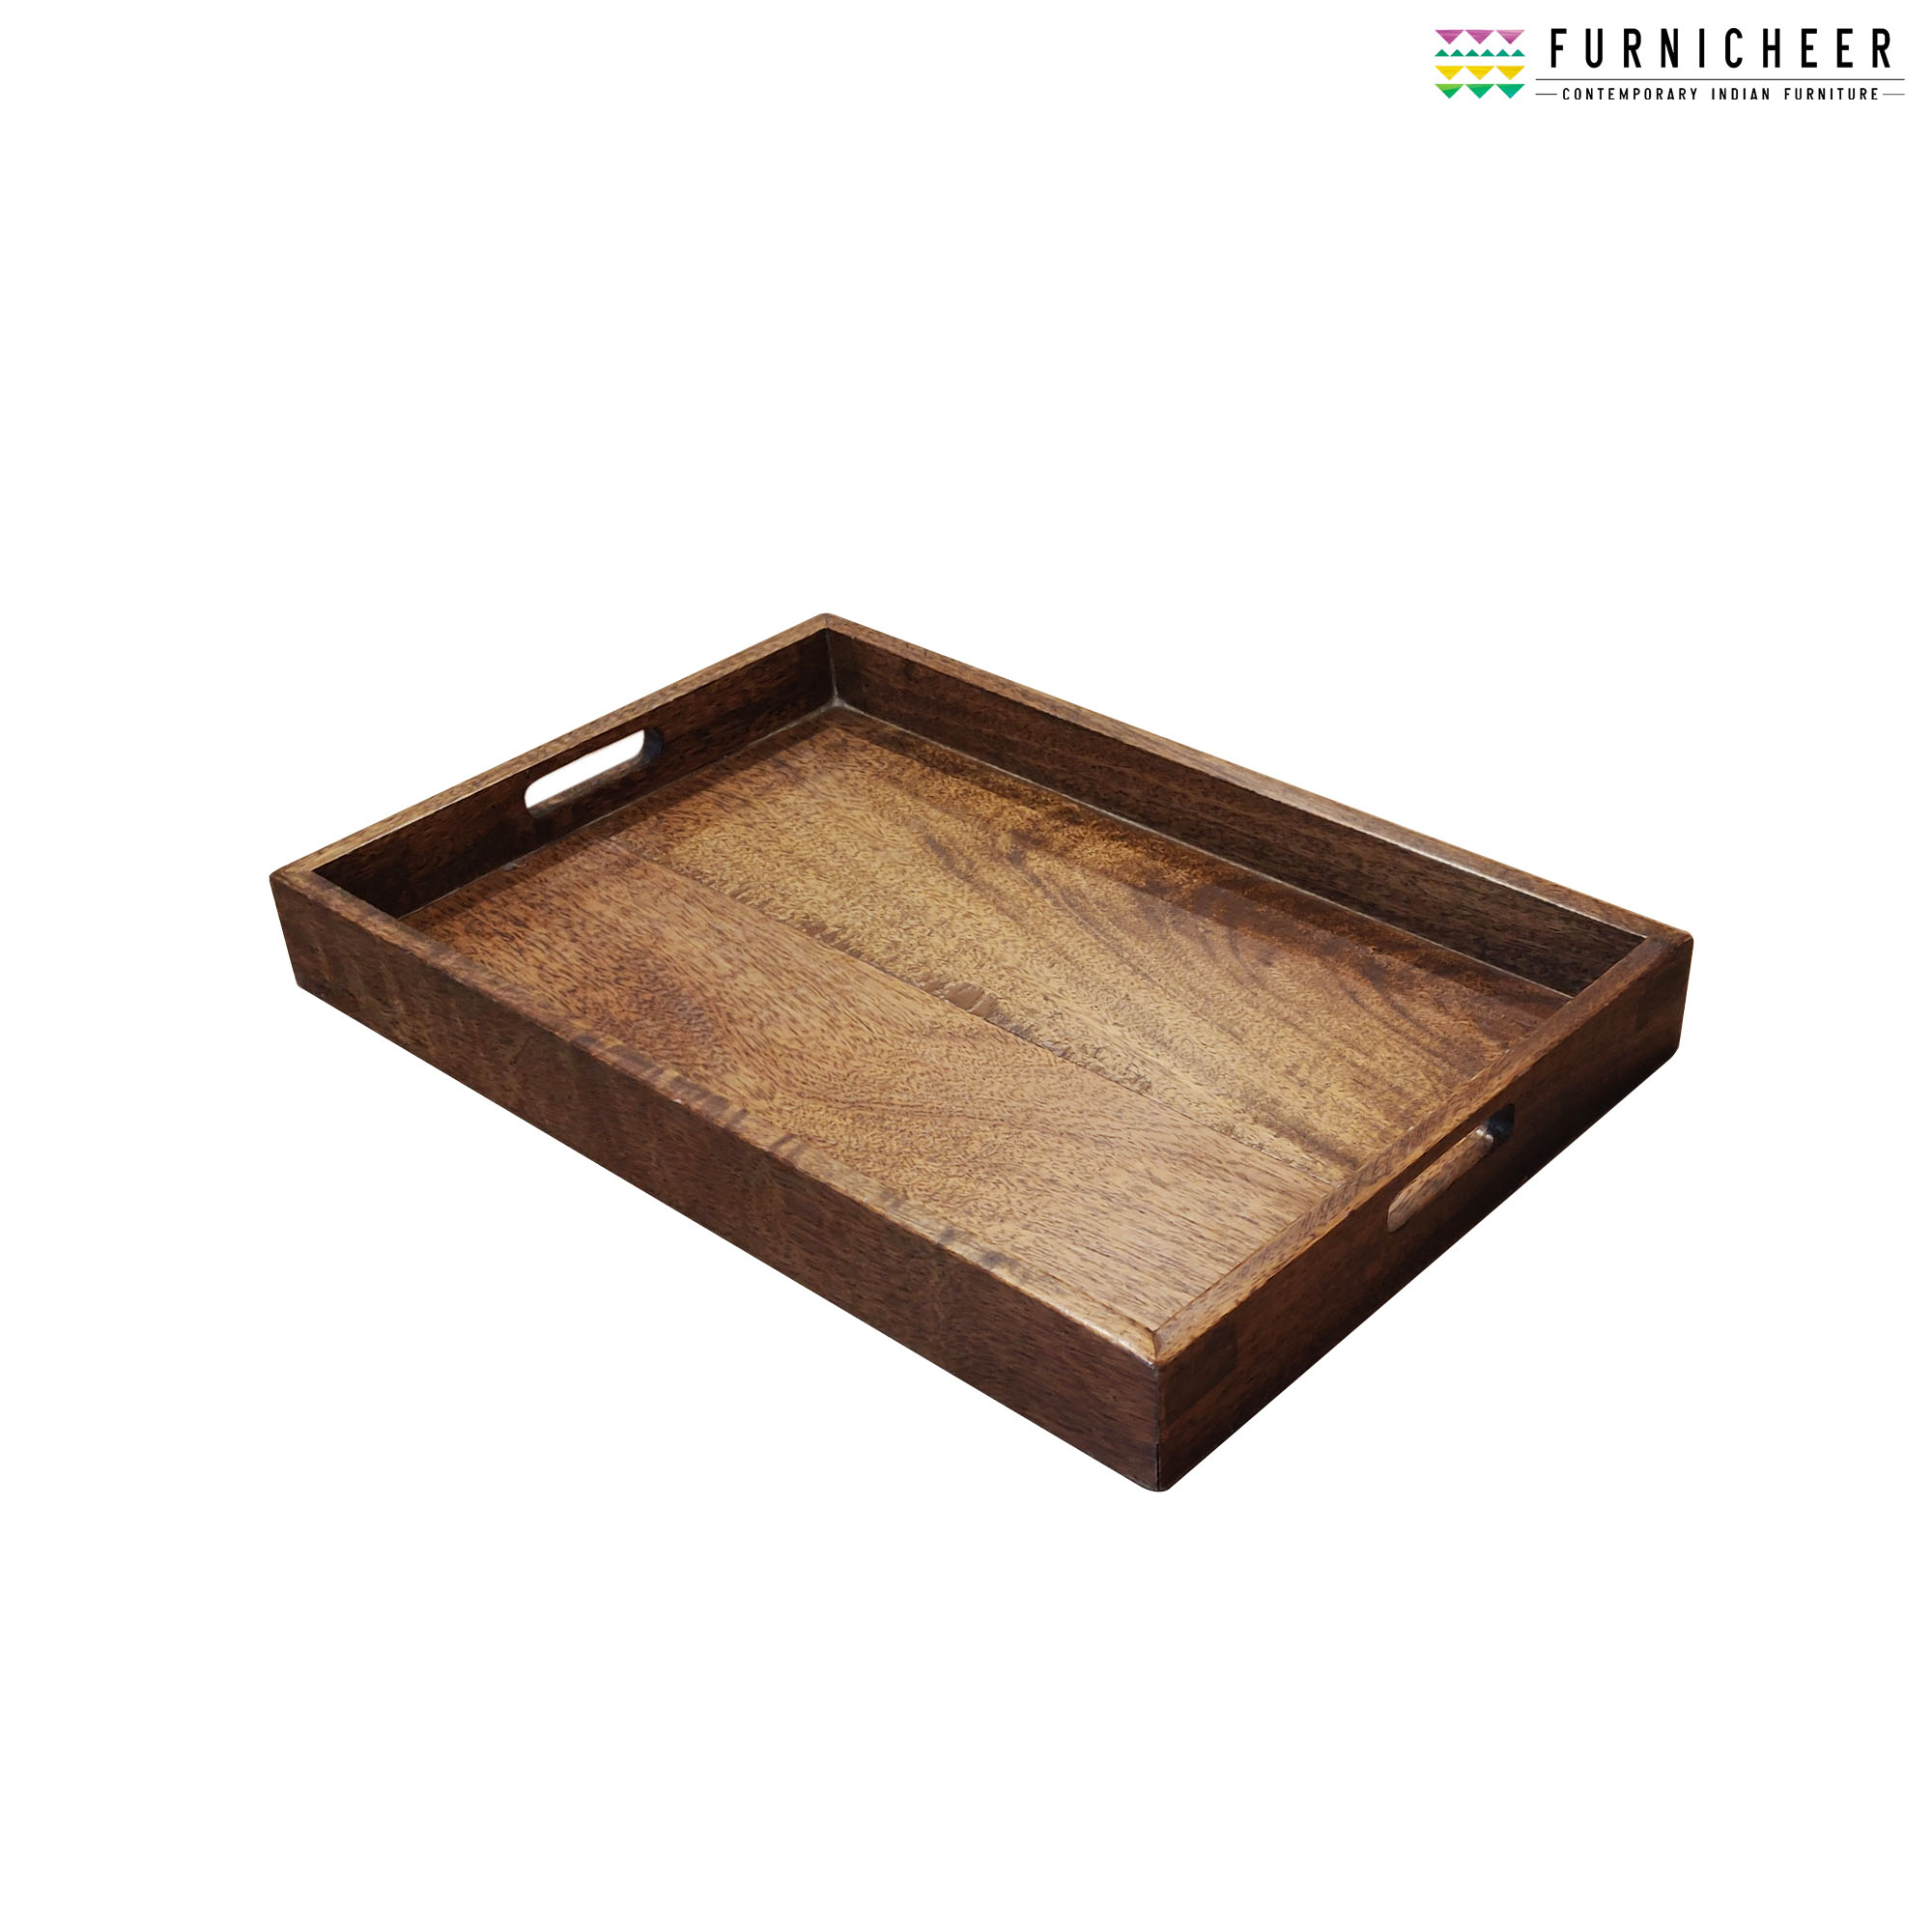 3.SERVING TRAY SKU STYB0001